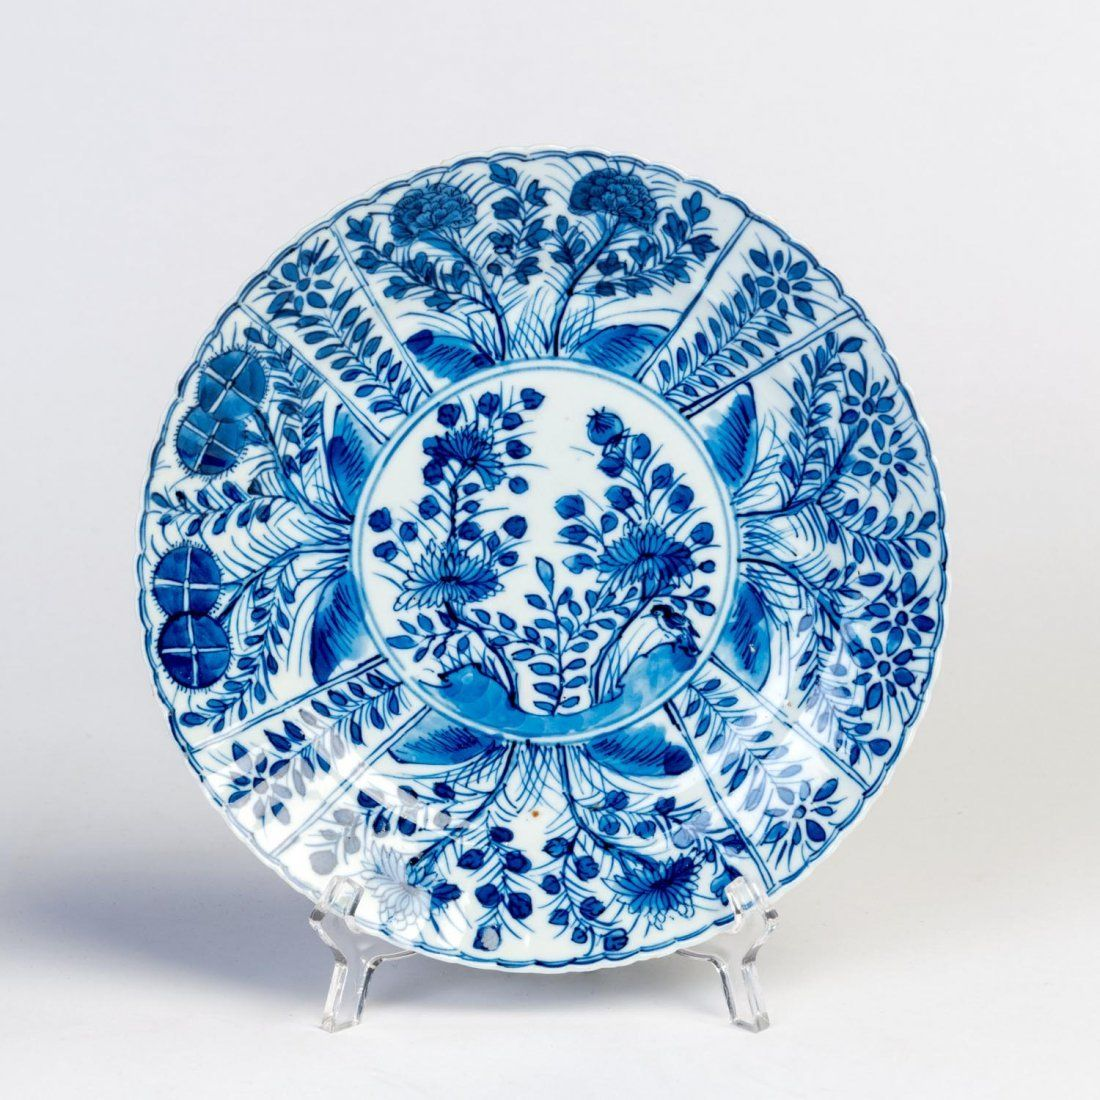 A Chinese Blue And White Porcelain Dish Kangxi Mark 18th Century White Porcelain Antique Porcelain Dolls Porcelain